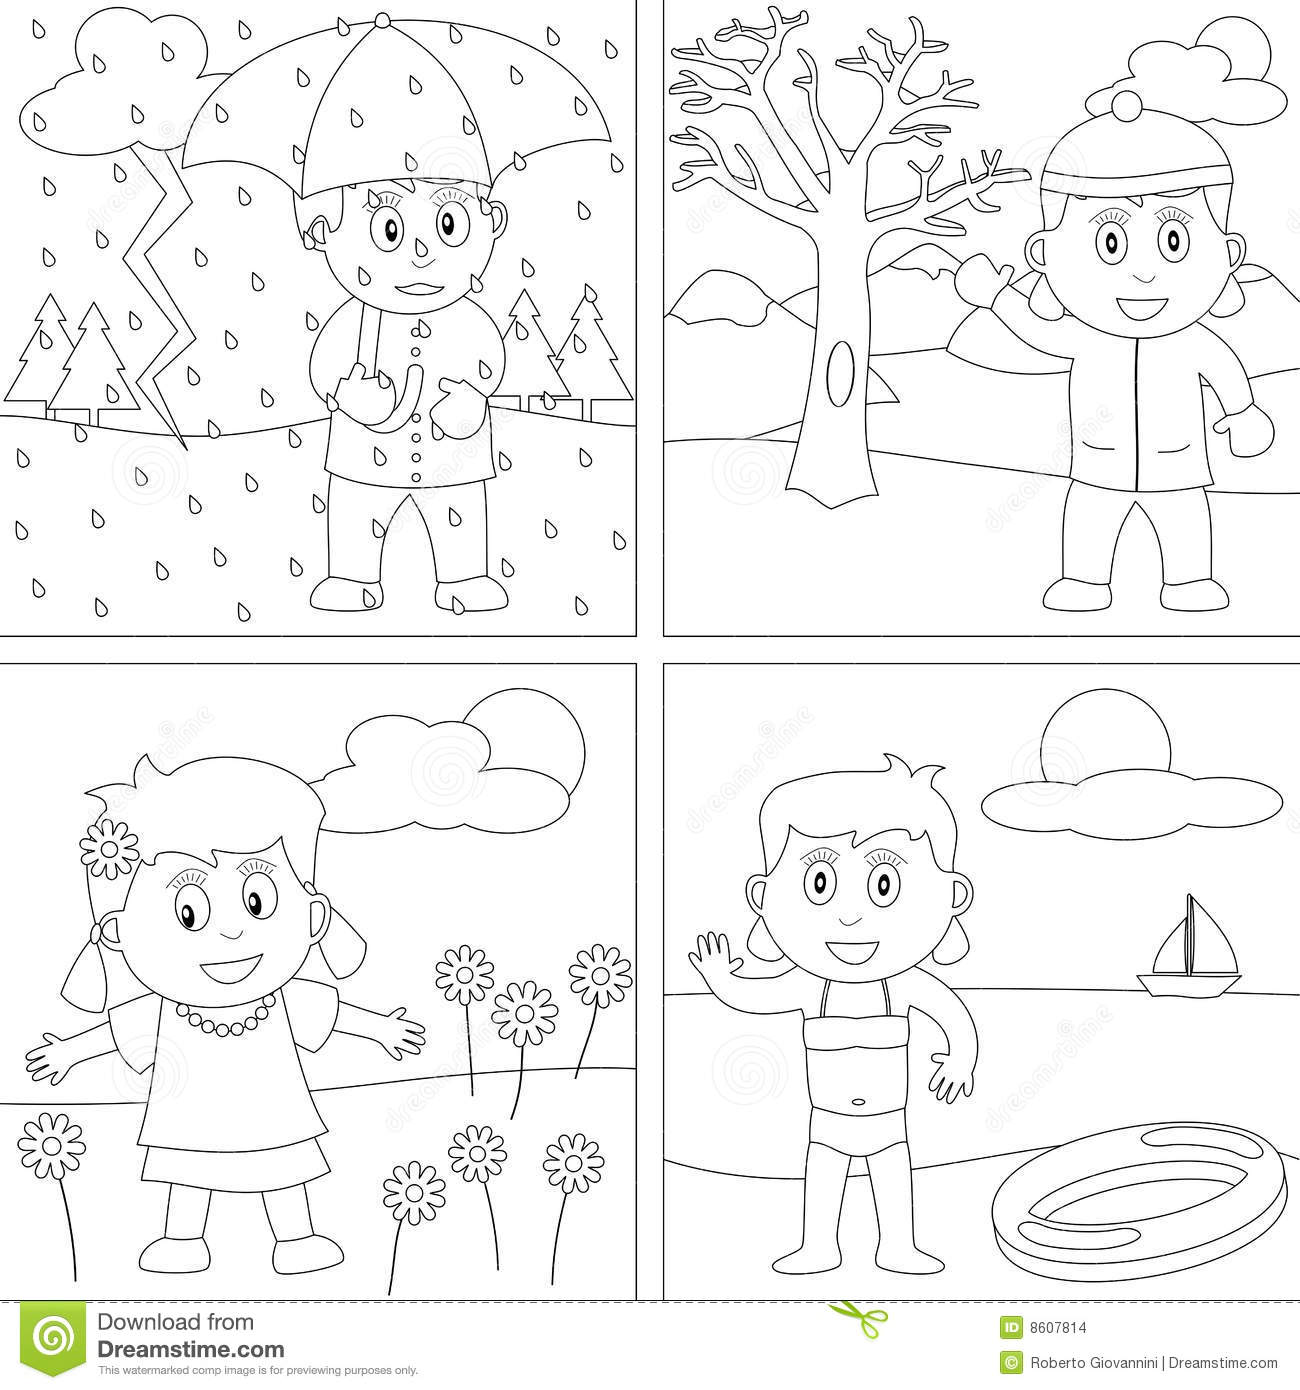 Summer Clothes Coloring Pages Free Online Printable Sheets